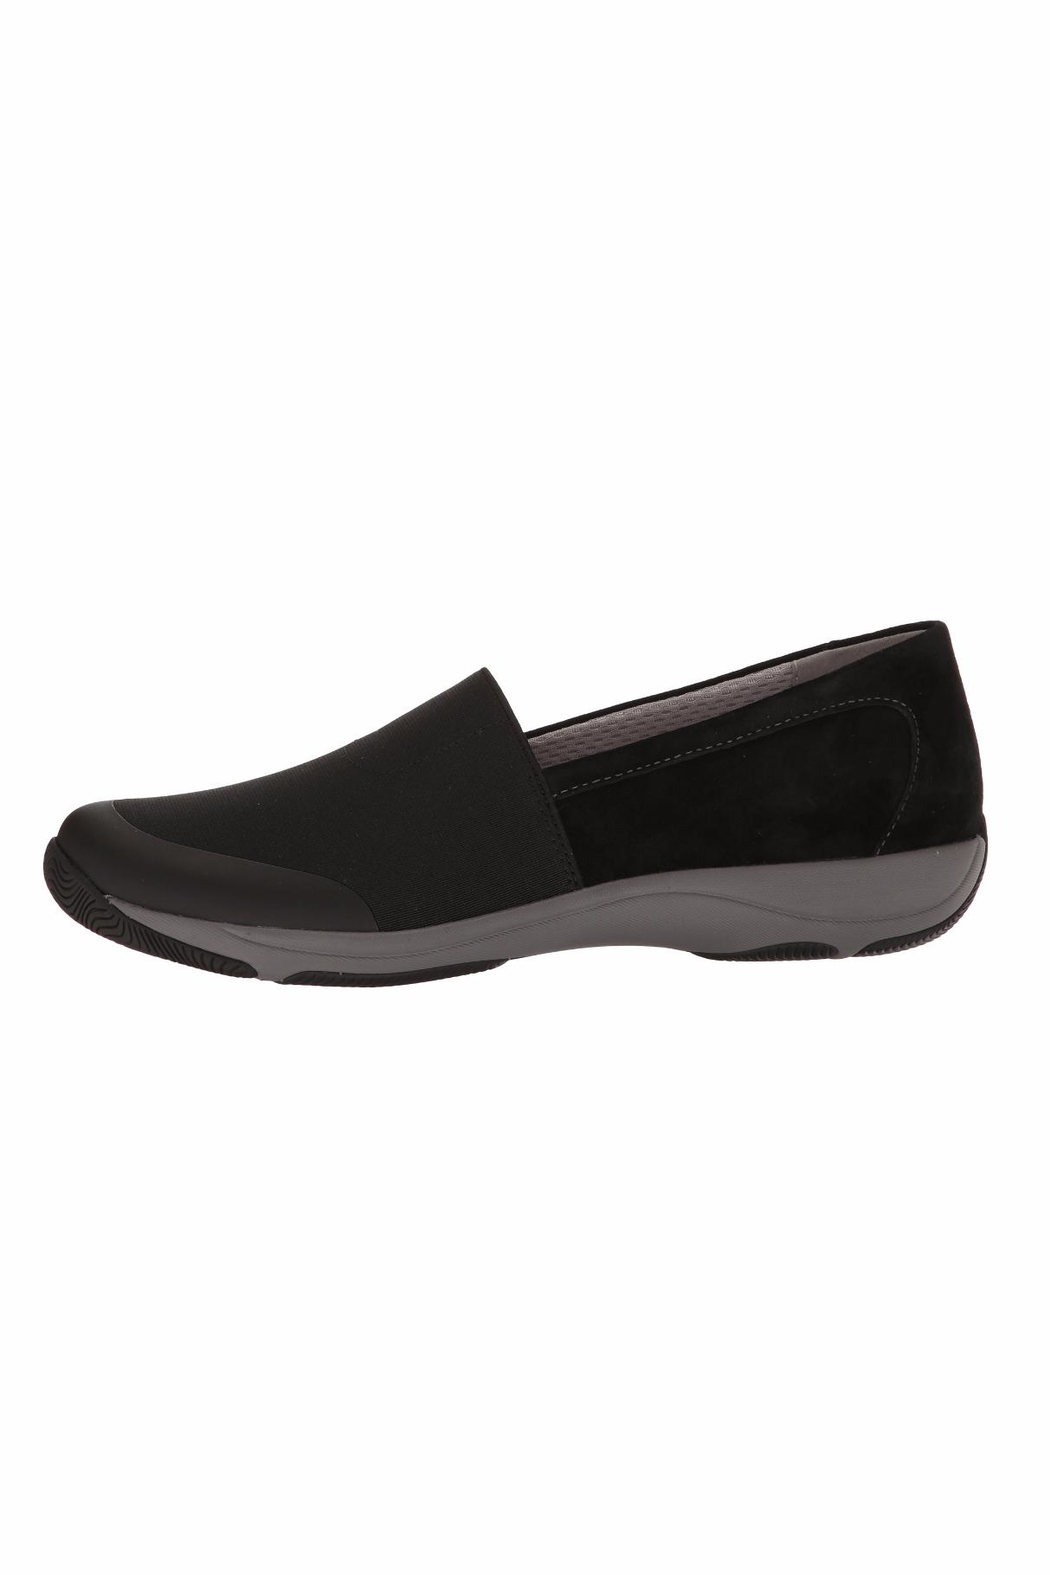 Dansko Harriette Slip On Sneaker - Main Image